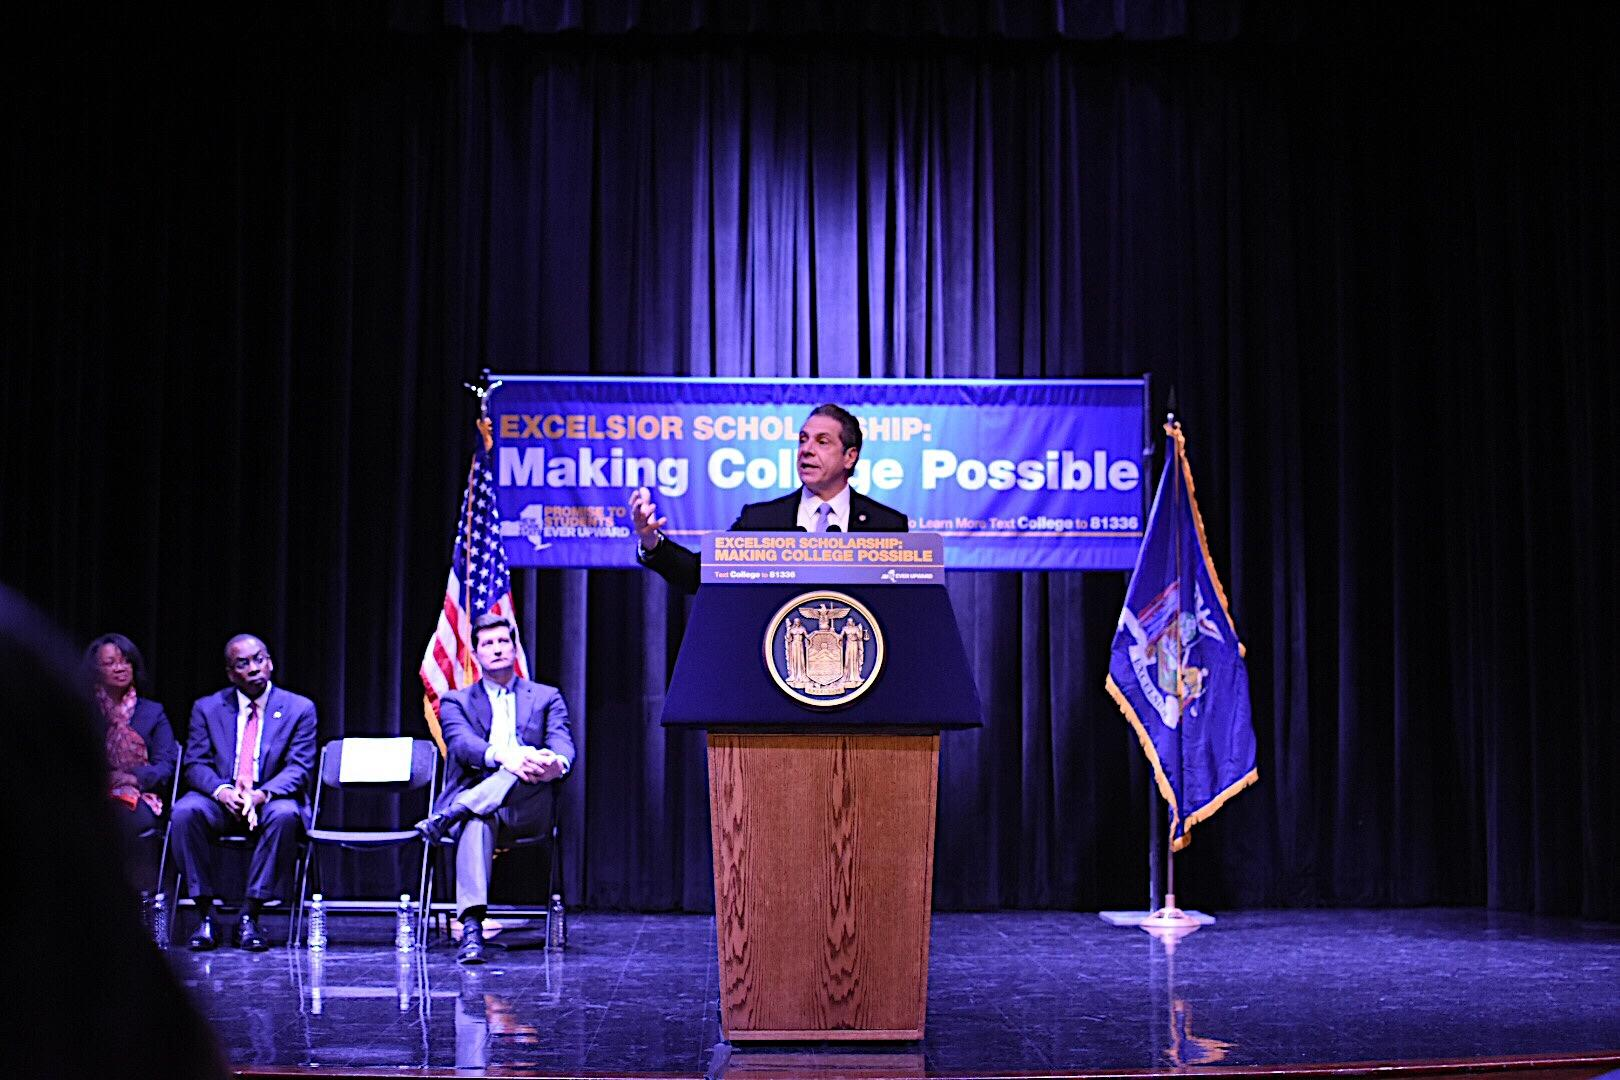 Gov. Andrew Cuomo spoke at SUNY Buffalo State on Tuesday, Feb. 7 about the Excelsior Scholarship initiative.